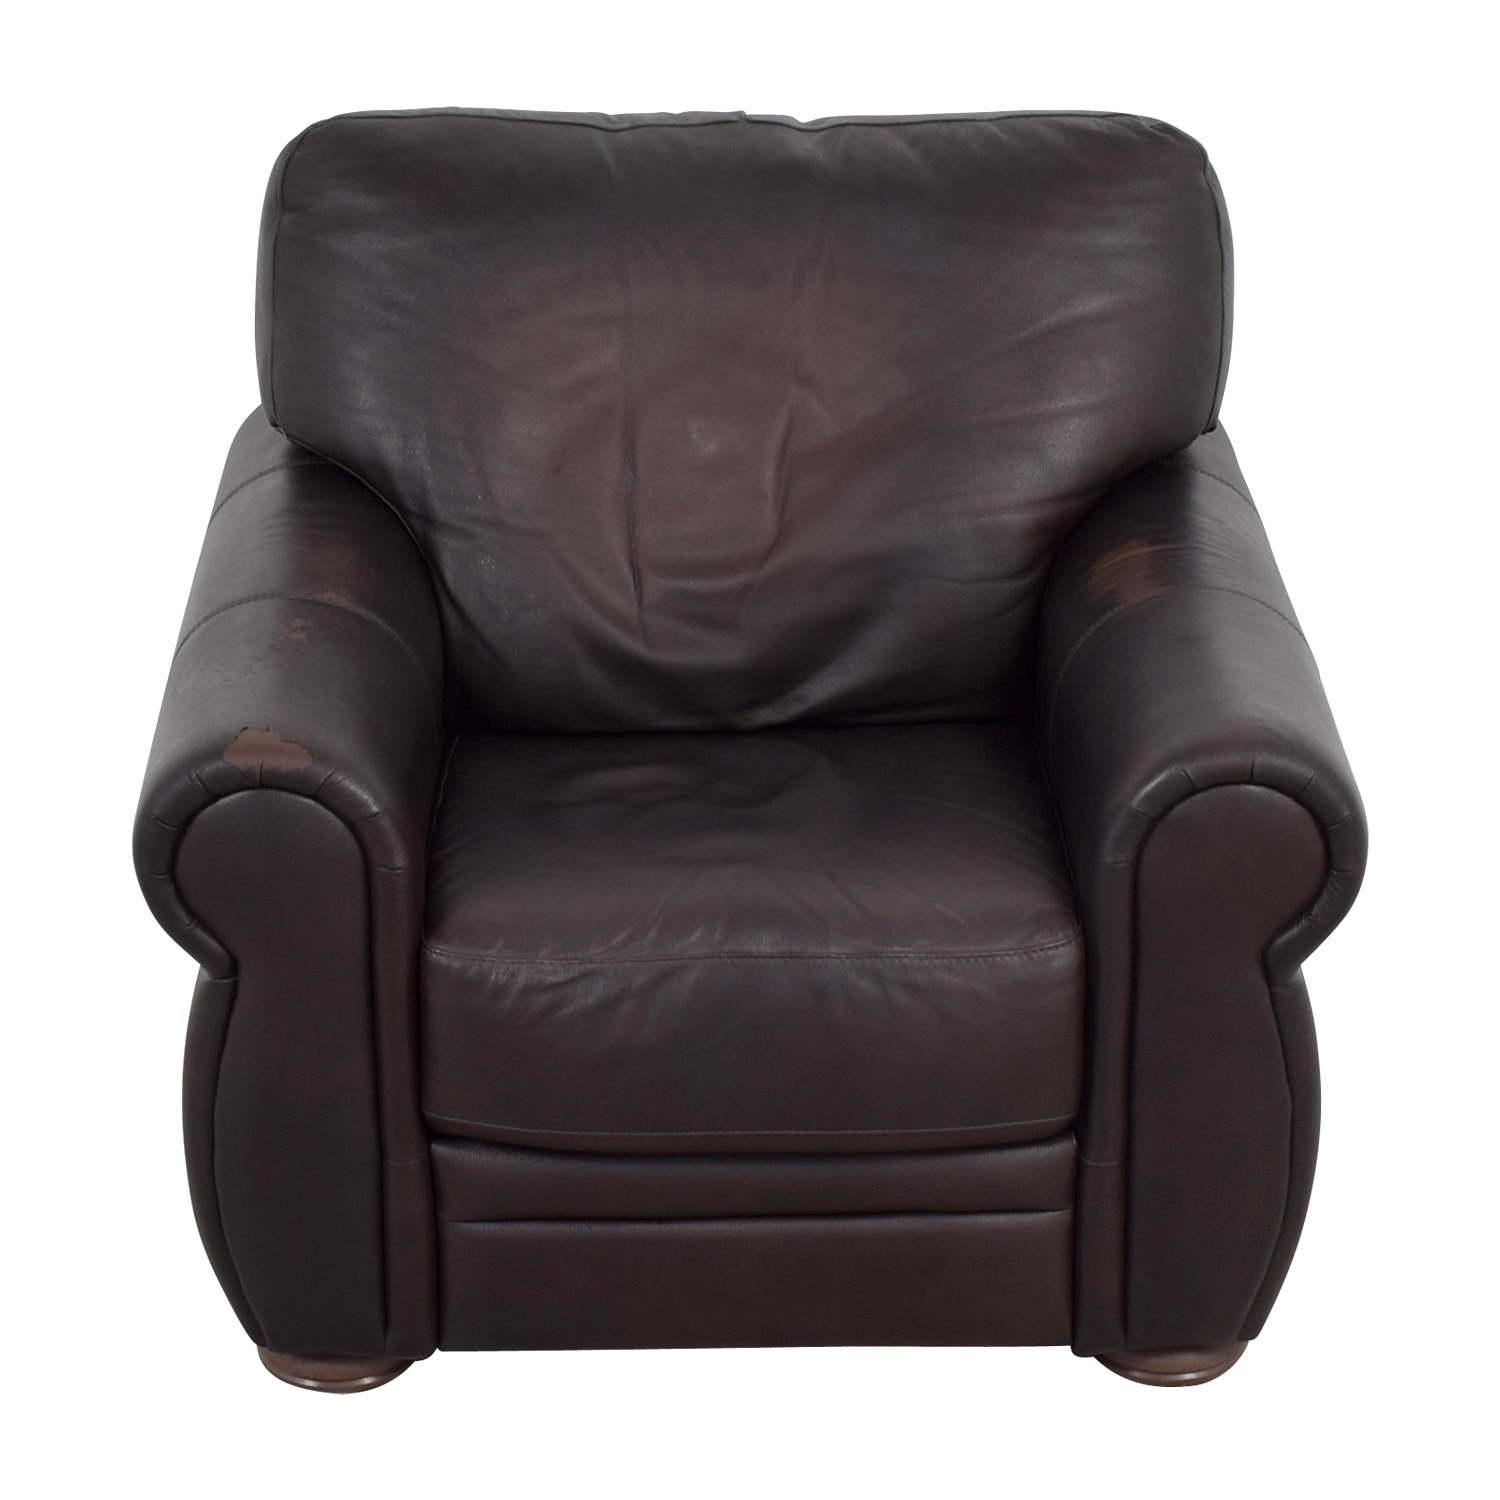 used recliner chairs parsons dining recliners for sale